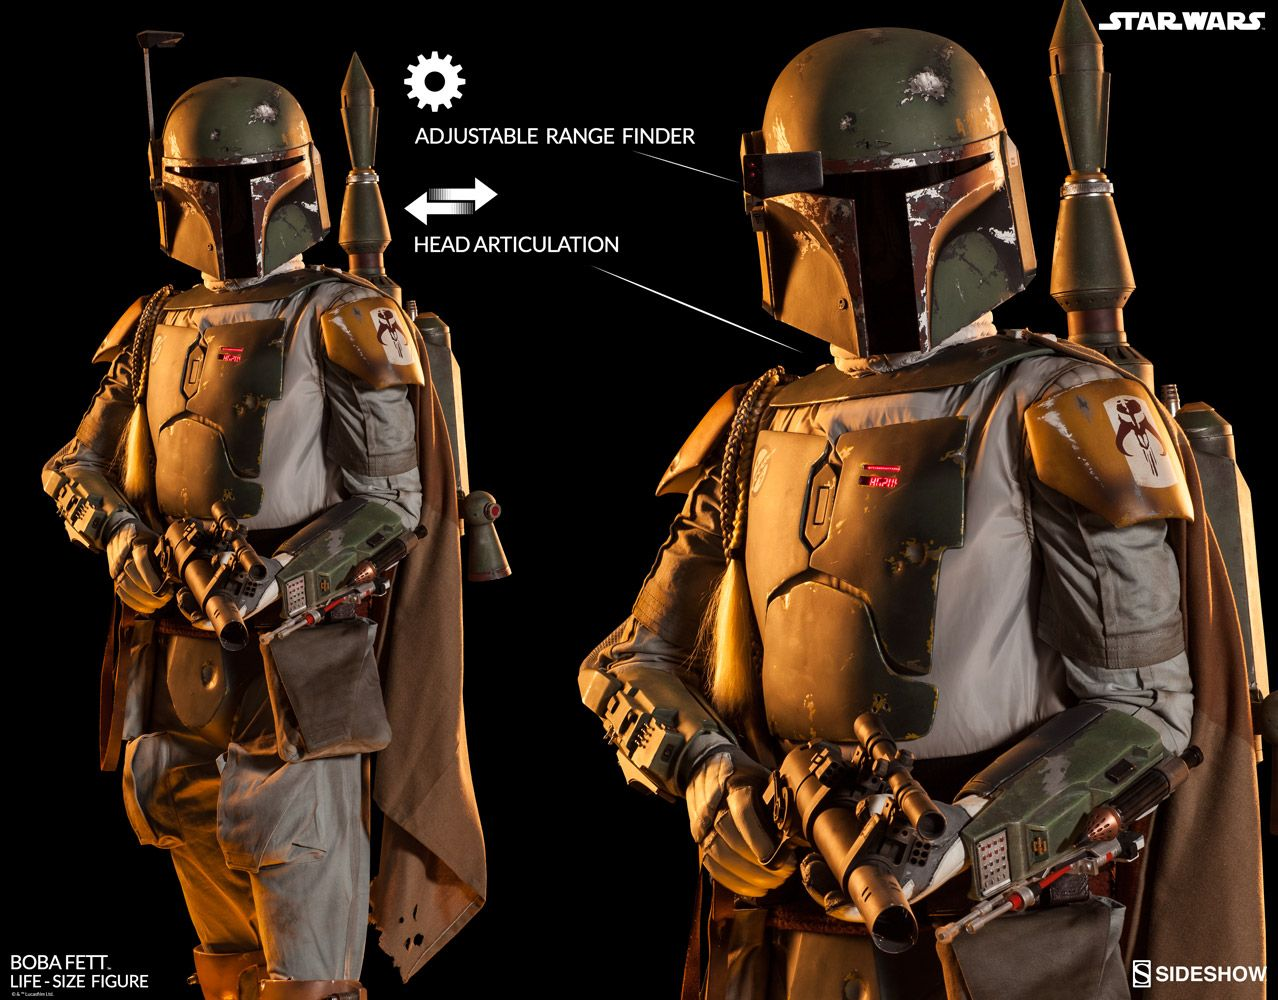 The Boba Fett Life-Size Figure replica is available at Sideshow,com for fans of Star Wars Return of the Jedi.